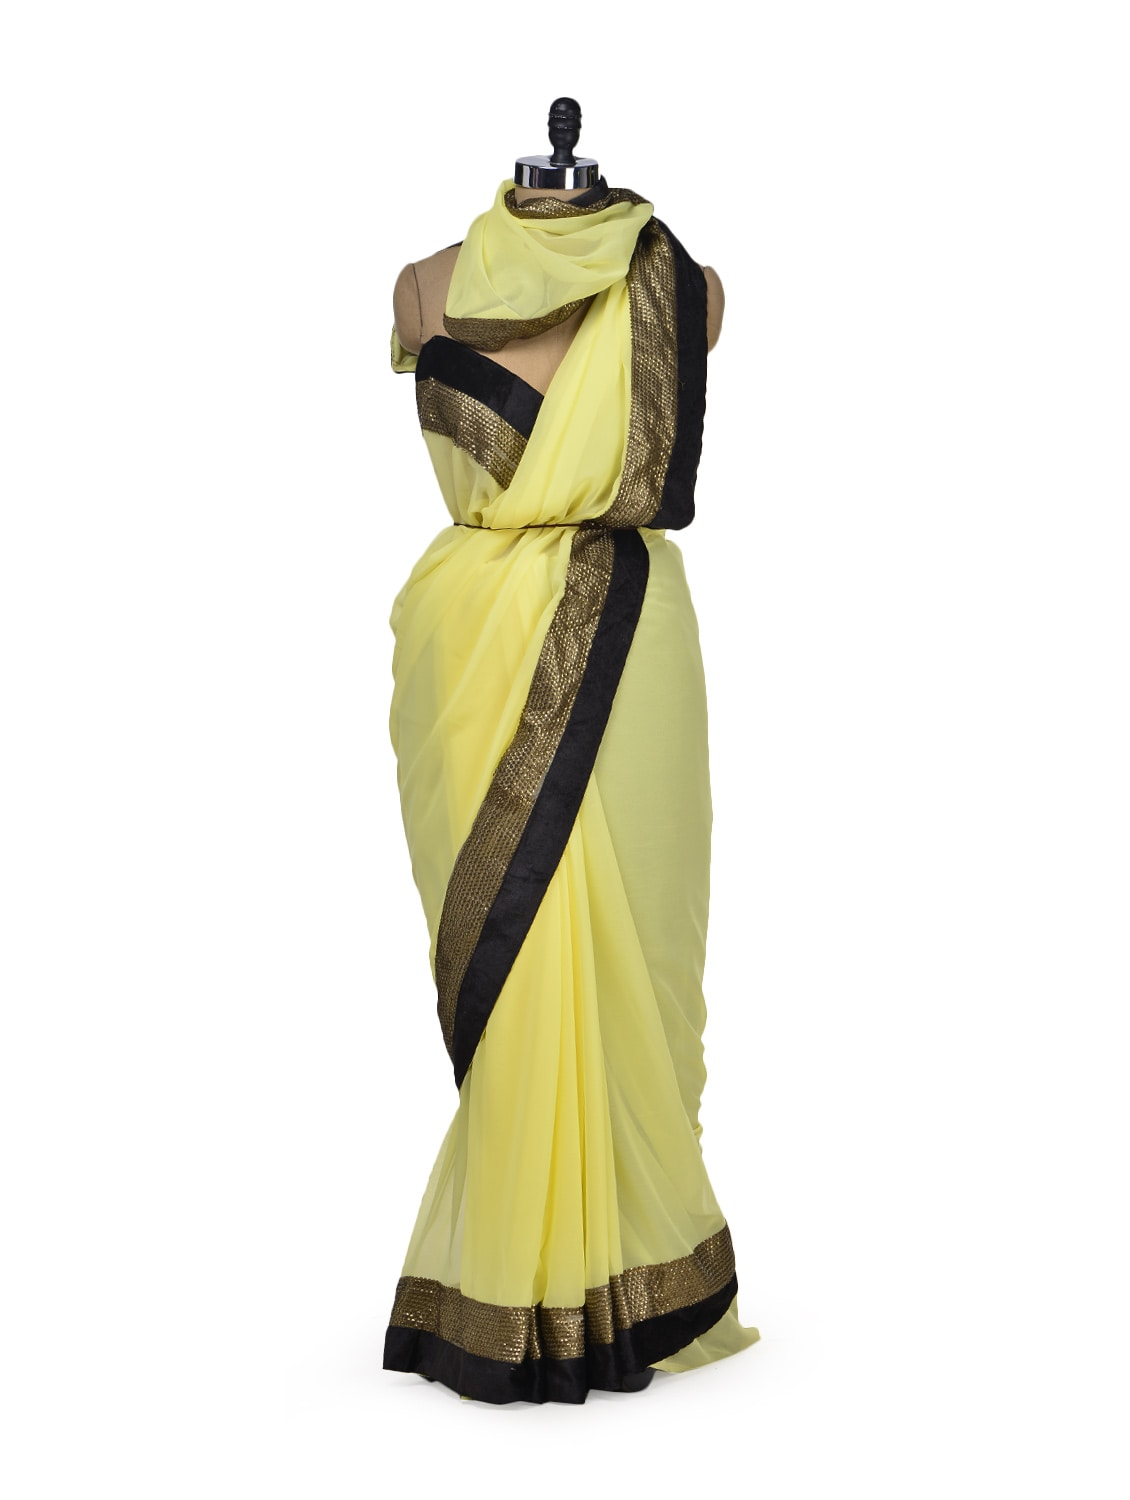 Chic Yellow Designer Saree - Get Style At Home